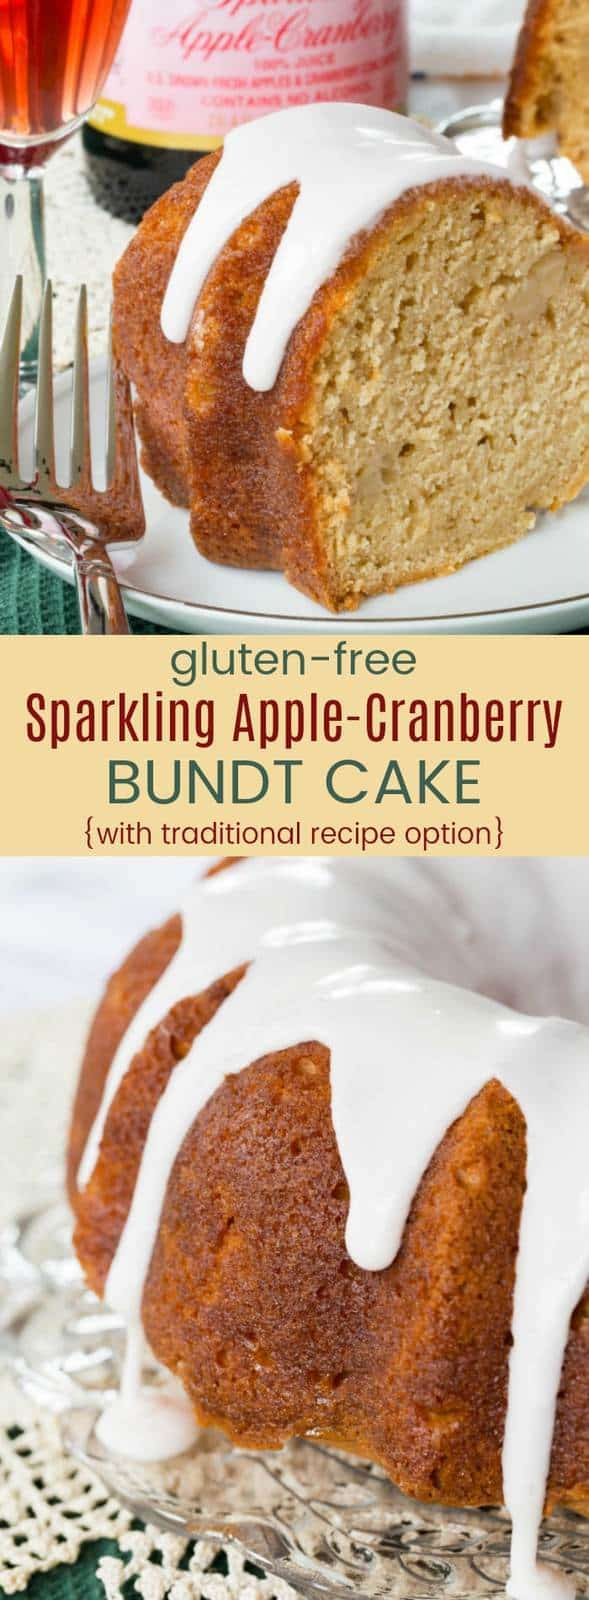 Gluten-Free Sparkling Apple-Cranberry Bundt Cake - a simple, elegant holiday dessert recipe that is infused with @martinellisco Sparkling Apple-Cranberry flavor in the pound cake recipe, glaze, and icing. Don't need gluten free? There's also instructions with all-purpose flour so this apple bundt cake can be part of any Thanksgiving, Christmas, New Year's Eve, or other holiday menu! #AD #glutenfree #glutenfreecake #bundtcake #poundcake #sparklingcider